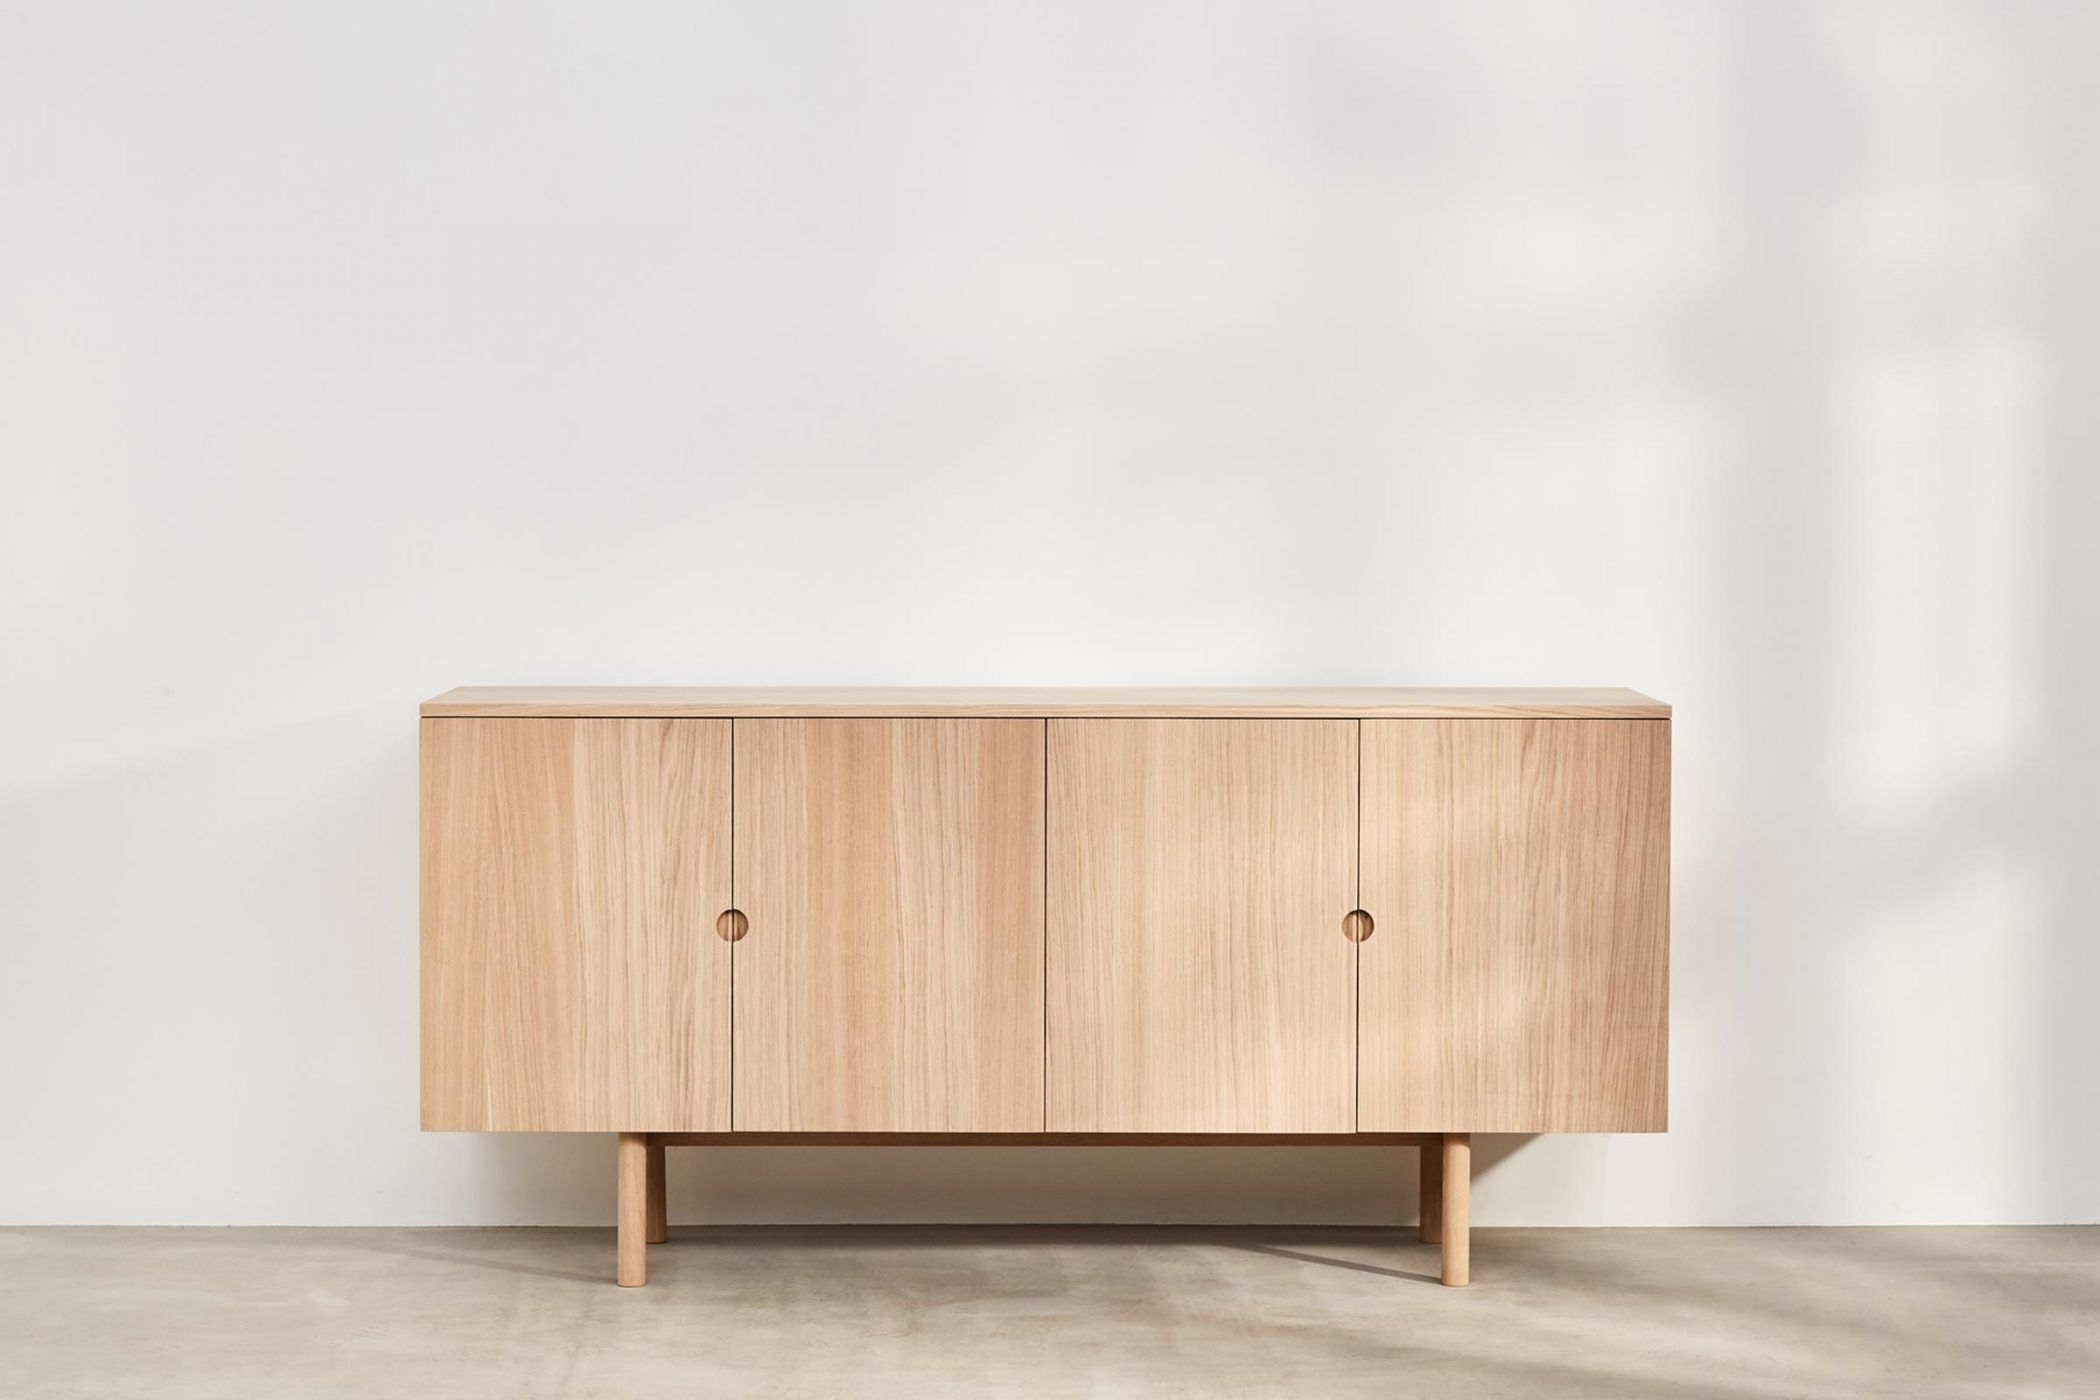 Benchmark Ovo Sideboard 4 Door Oak | Benchmark – Storage | Pinterest Intended For Most Current Oil Pale Finish 4 Door Sideboards (View 7 of 20)